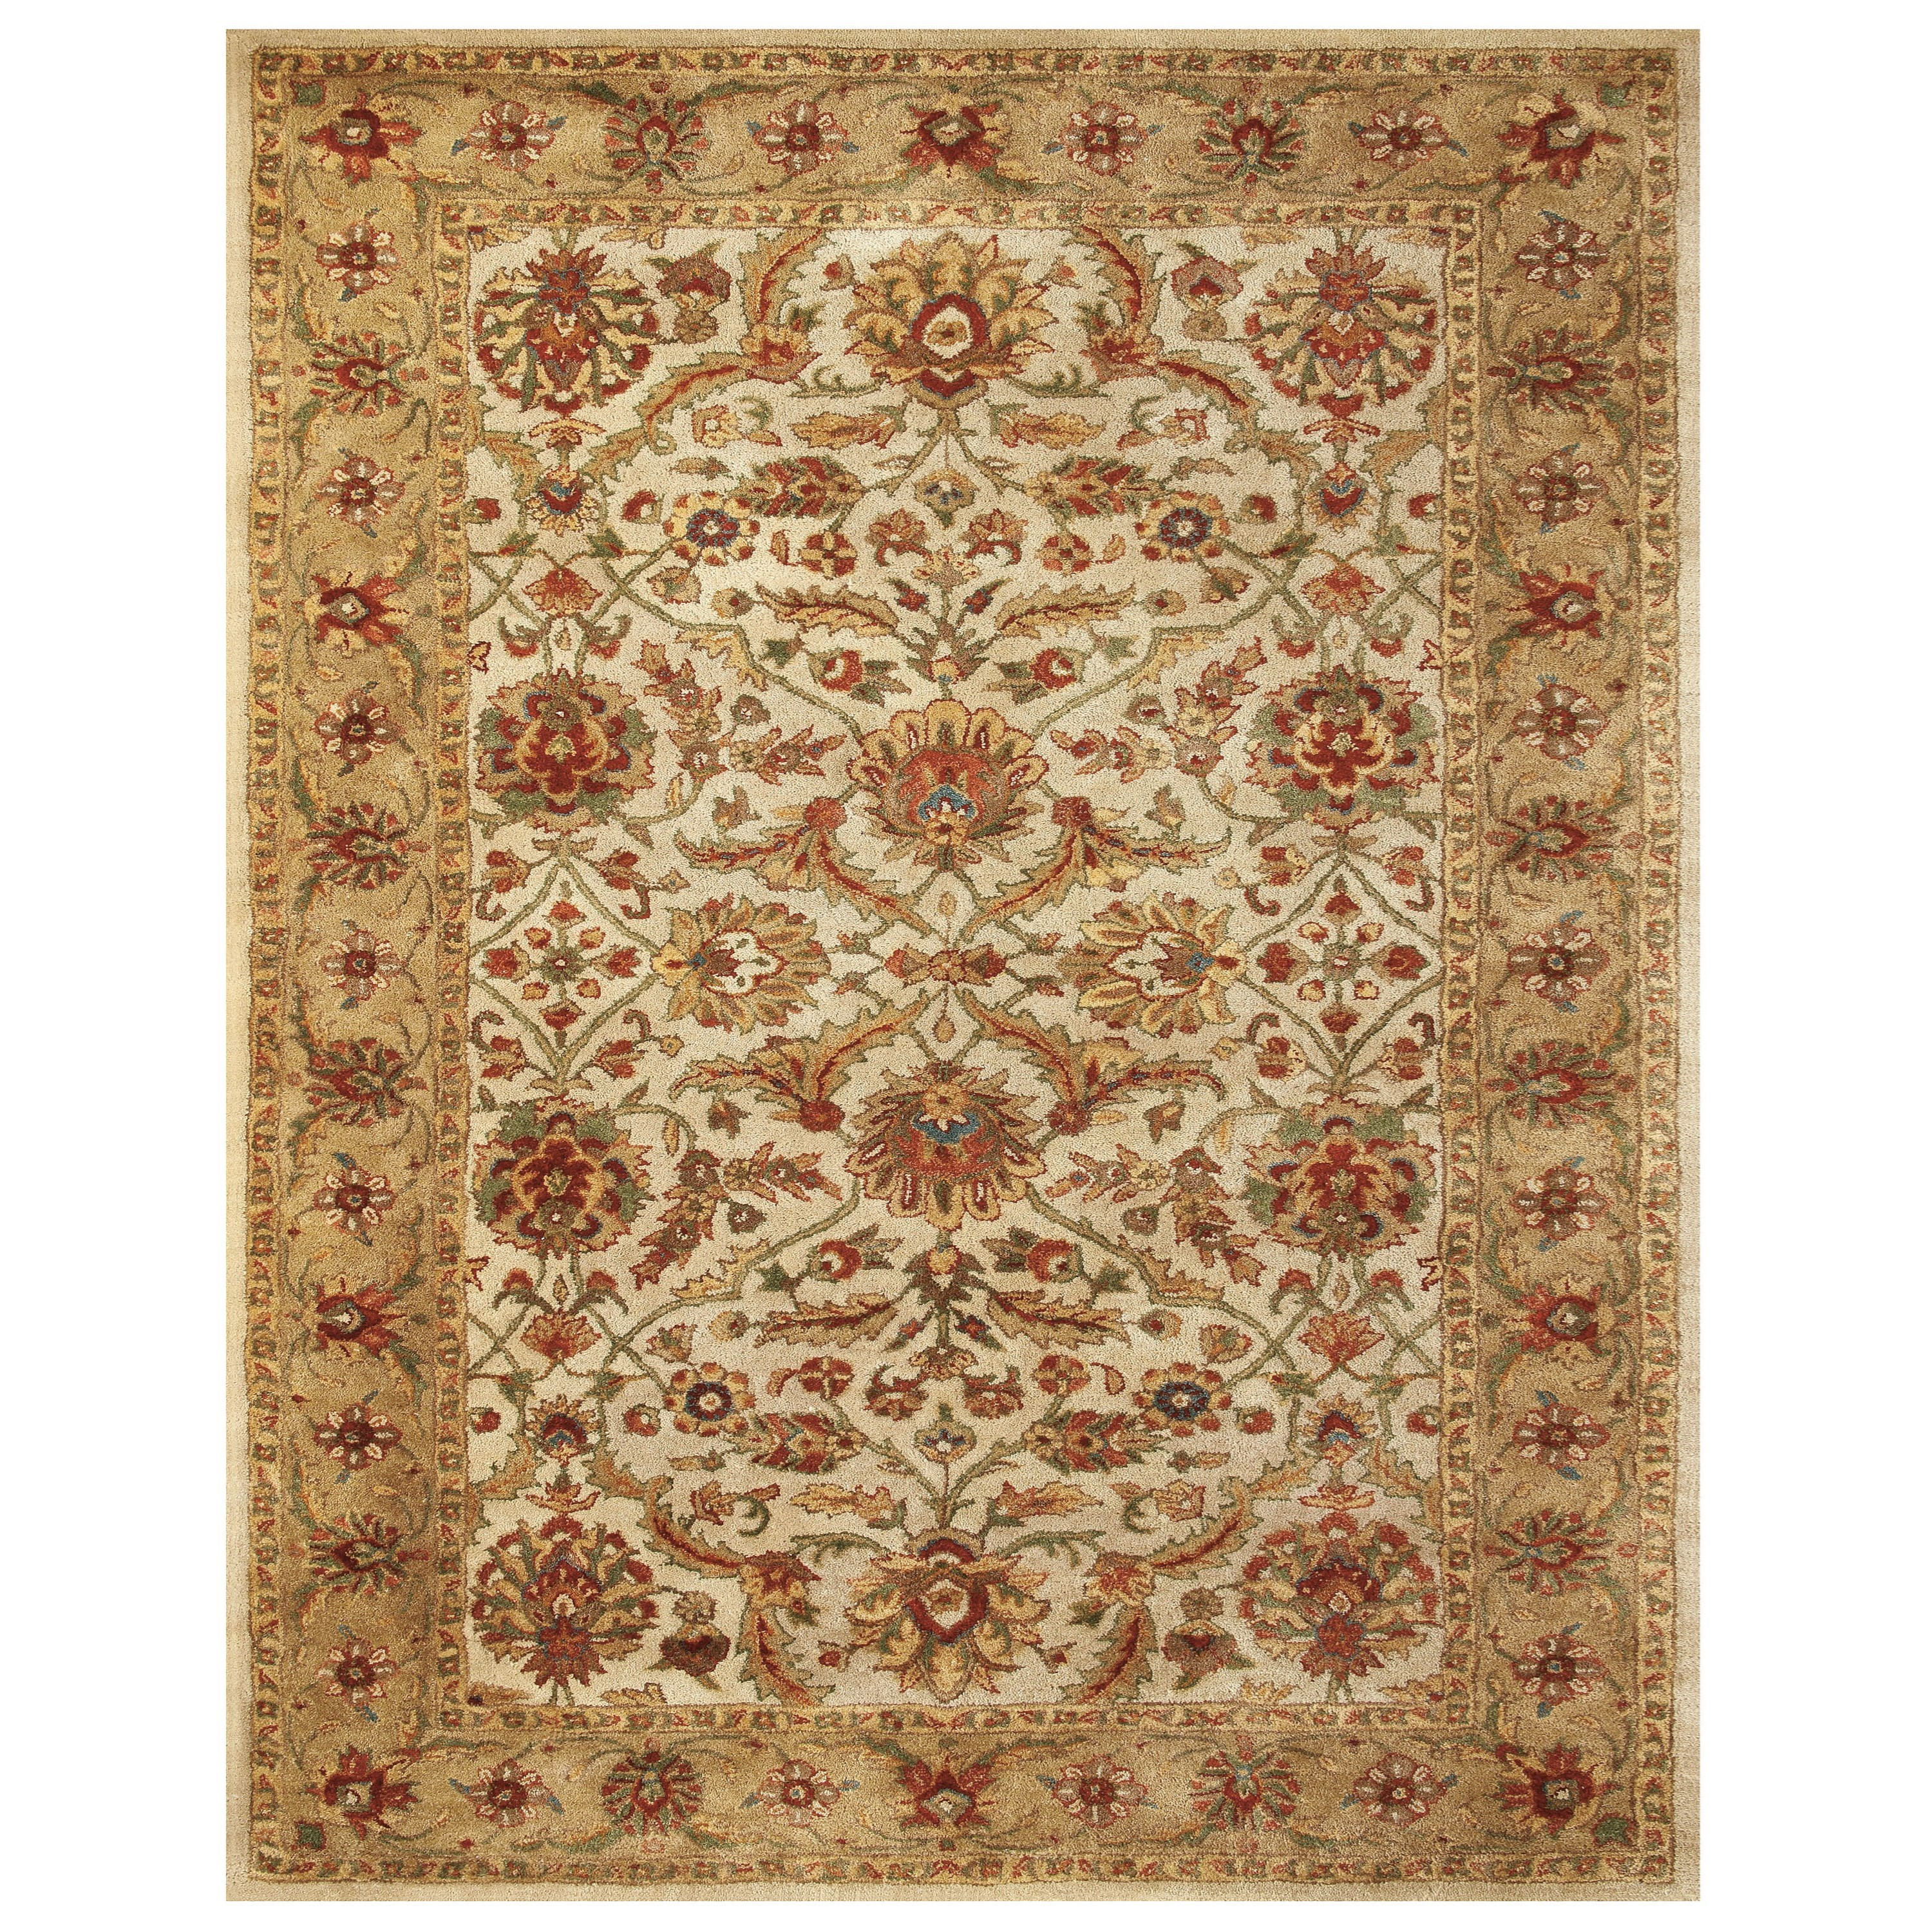 "Alexandra Ivory/Light Gold 3'-6"" x 5'-6"" Area Rug by Feizy Rugs at Sprintz Furniture"